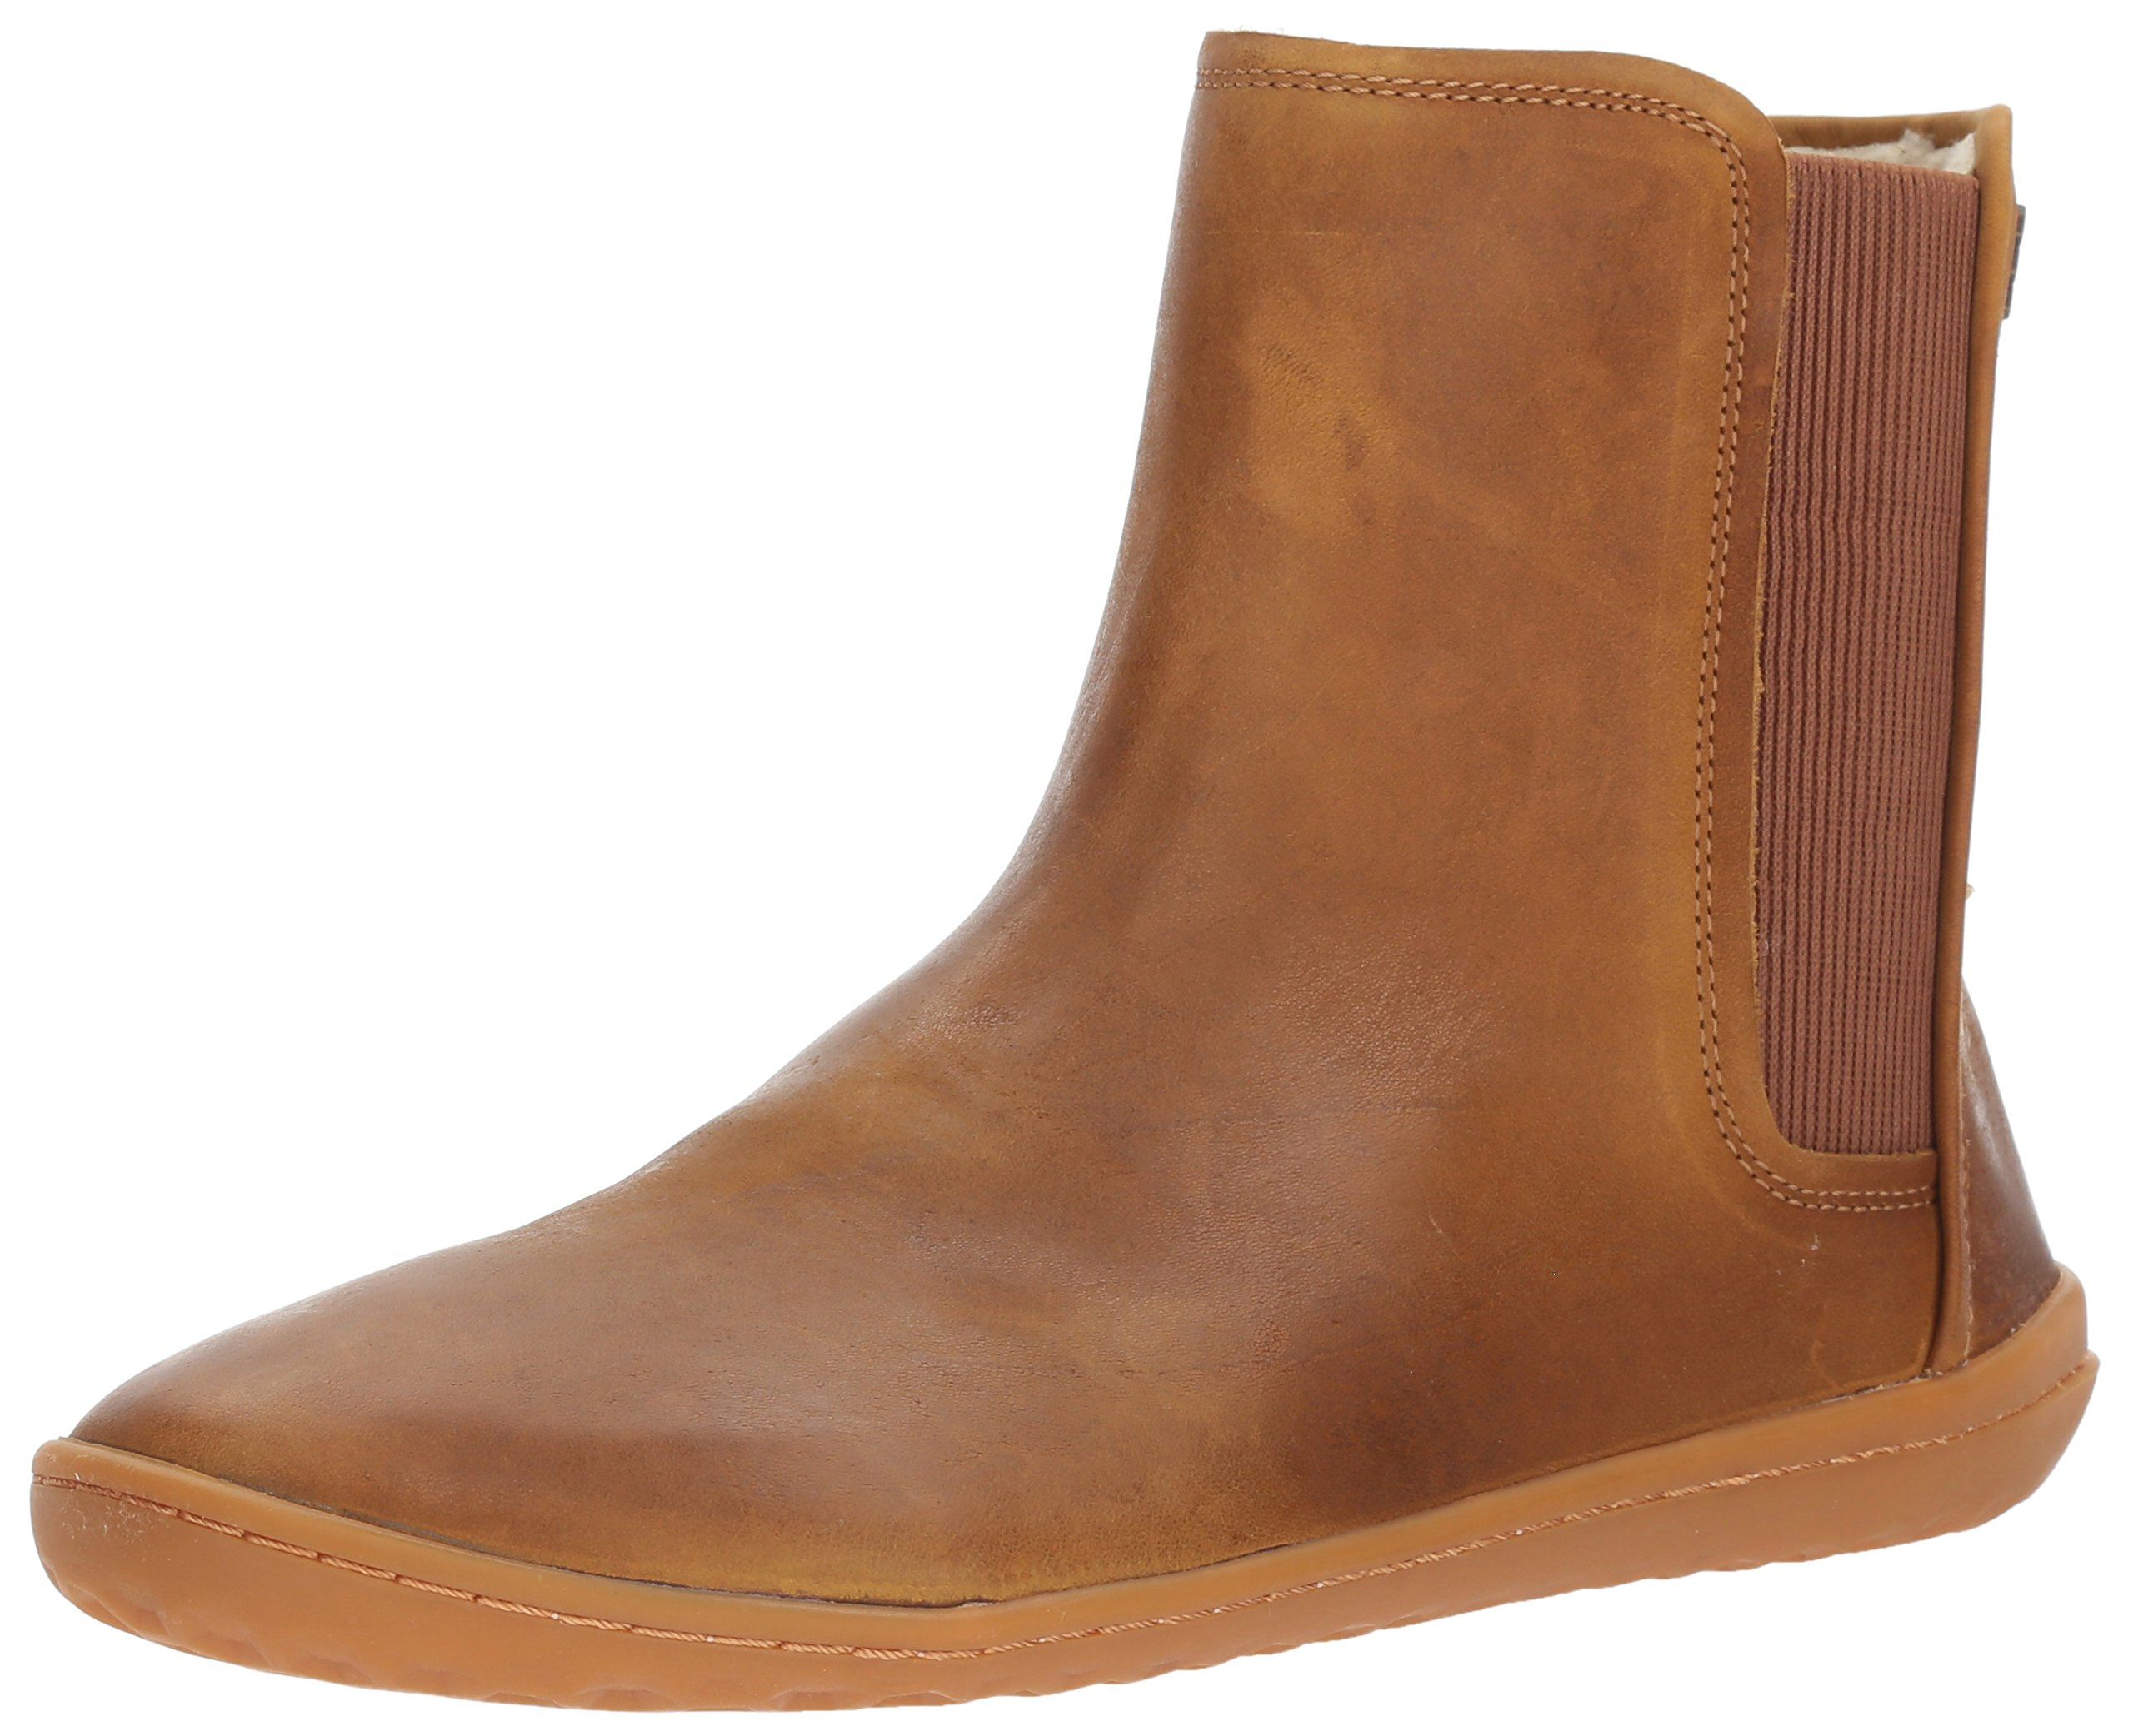 Vivobarefoot Women's Nepal Winterproof Lined Boot, Chestnut, 38 D EU (7.5 US)